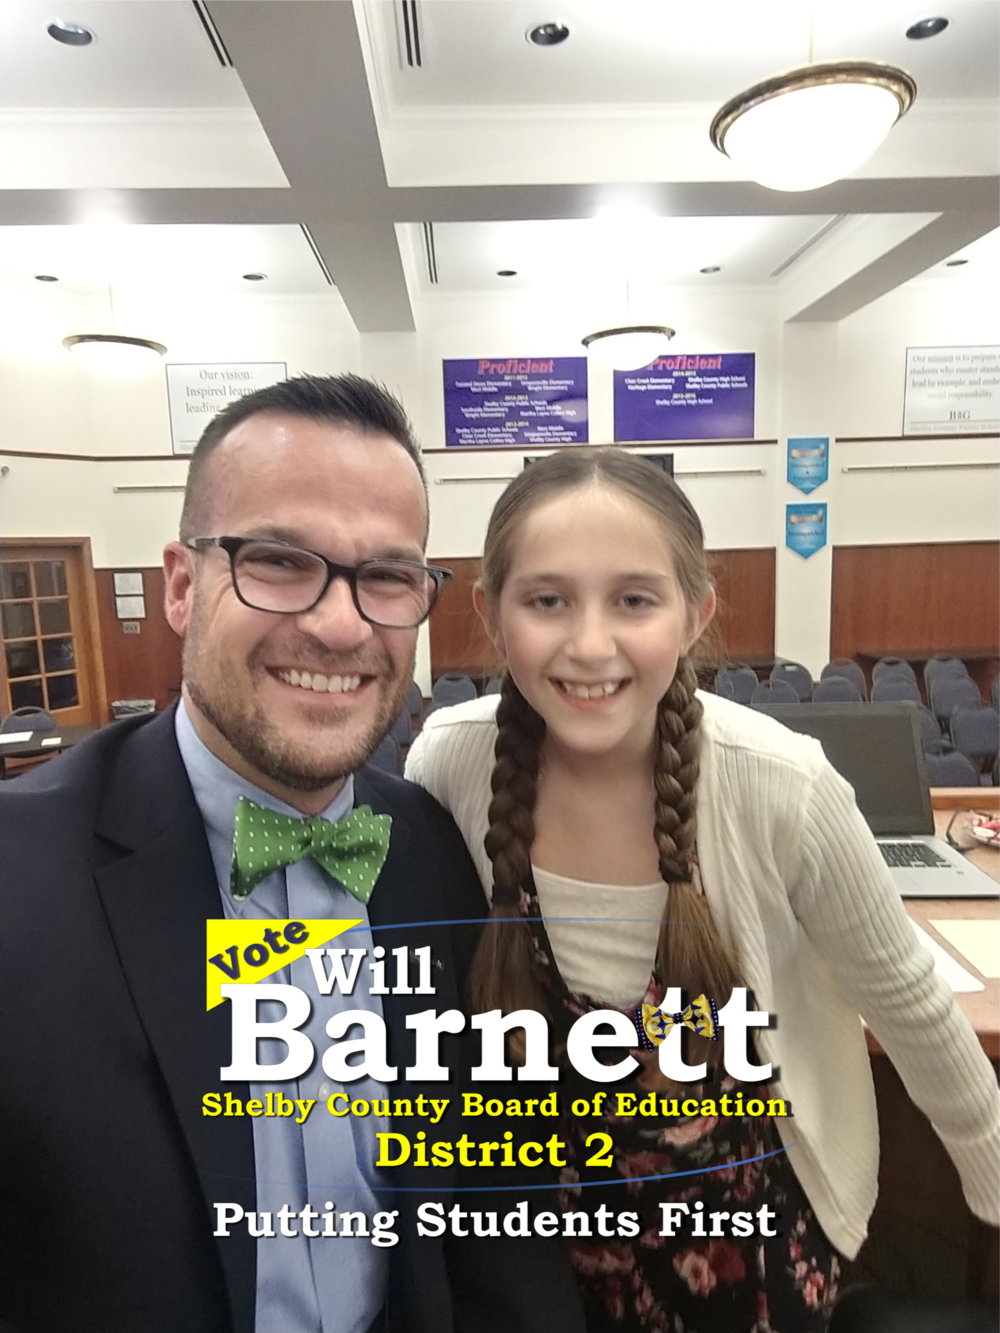 Newsletter for April 24th - Spring, when our minds turn to parks, budget, and graduation!  https://mailchi.mp/2157c0416d04/votewillbarnett-223199